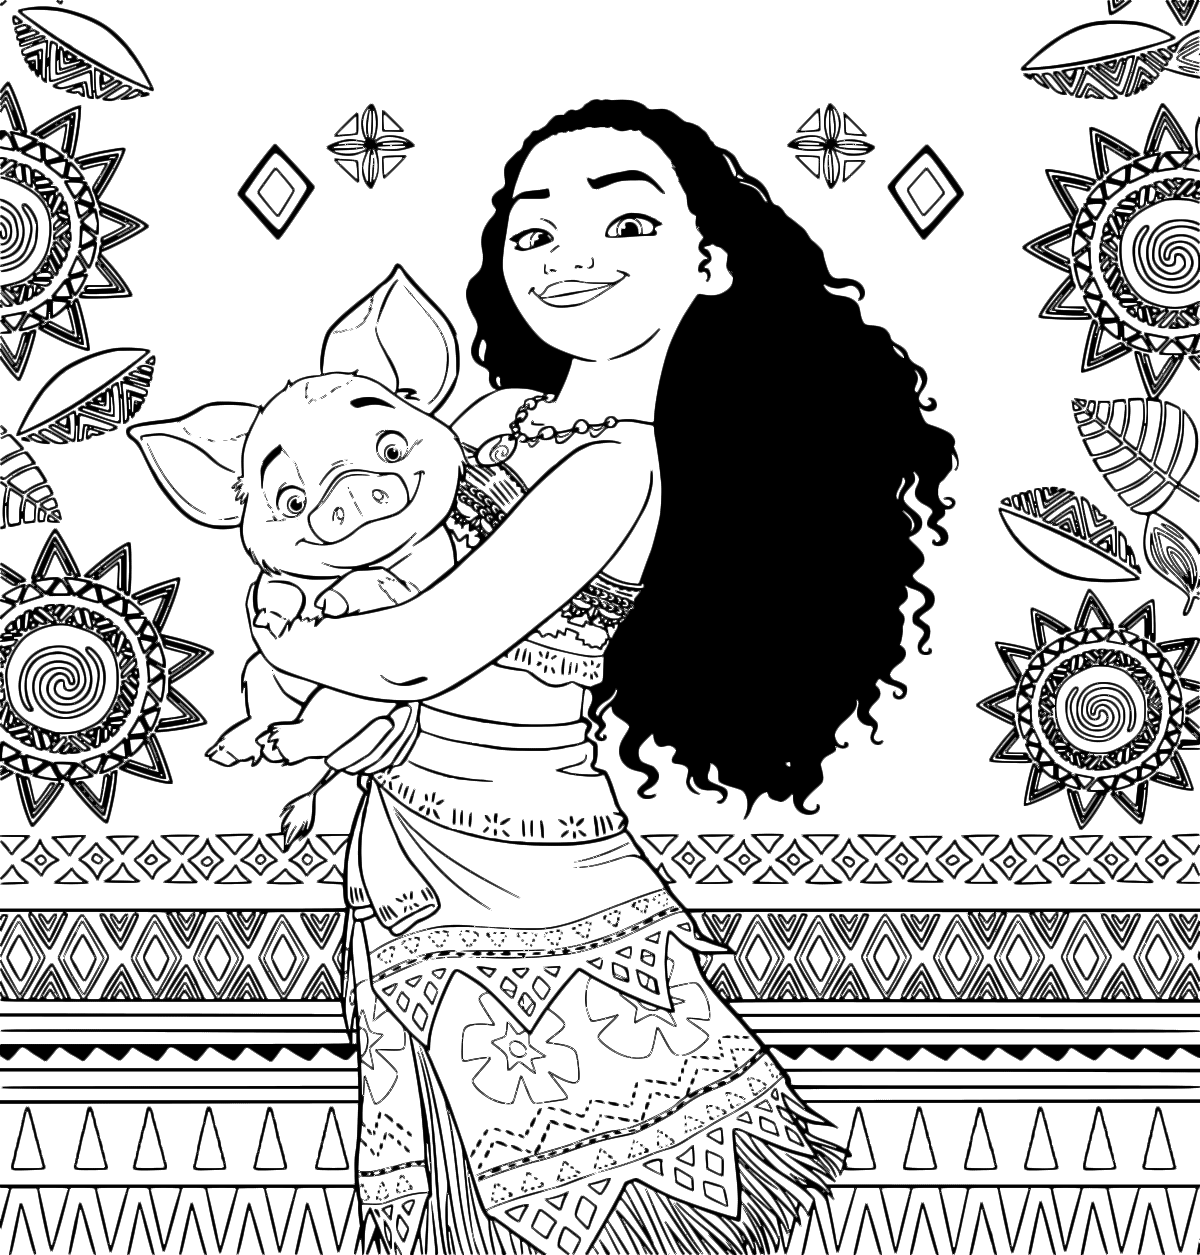 Moana - The Moana princess with Pua the pig Vietnamese